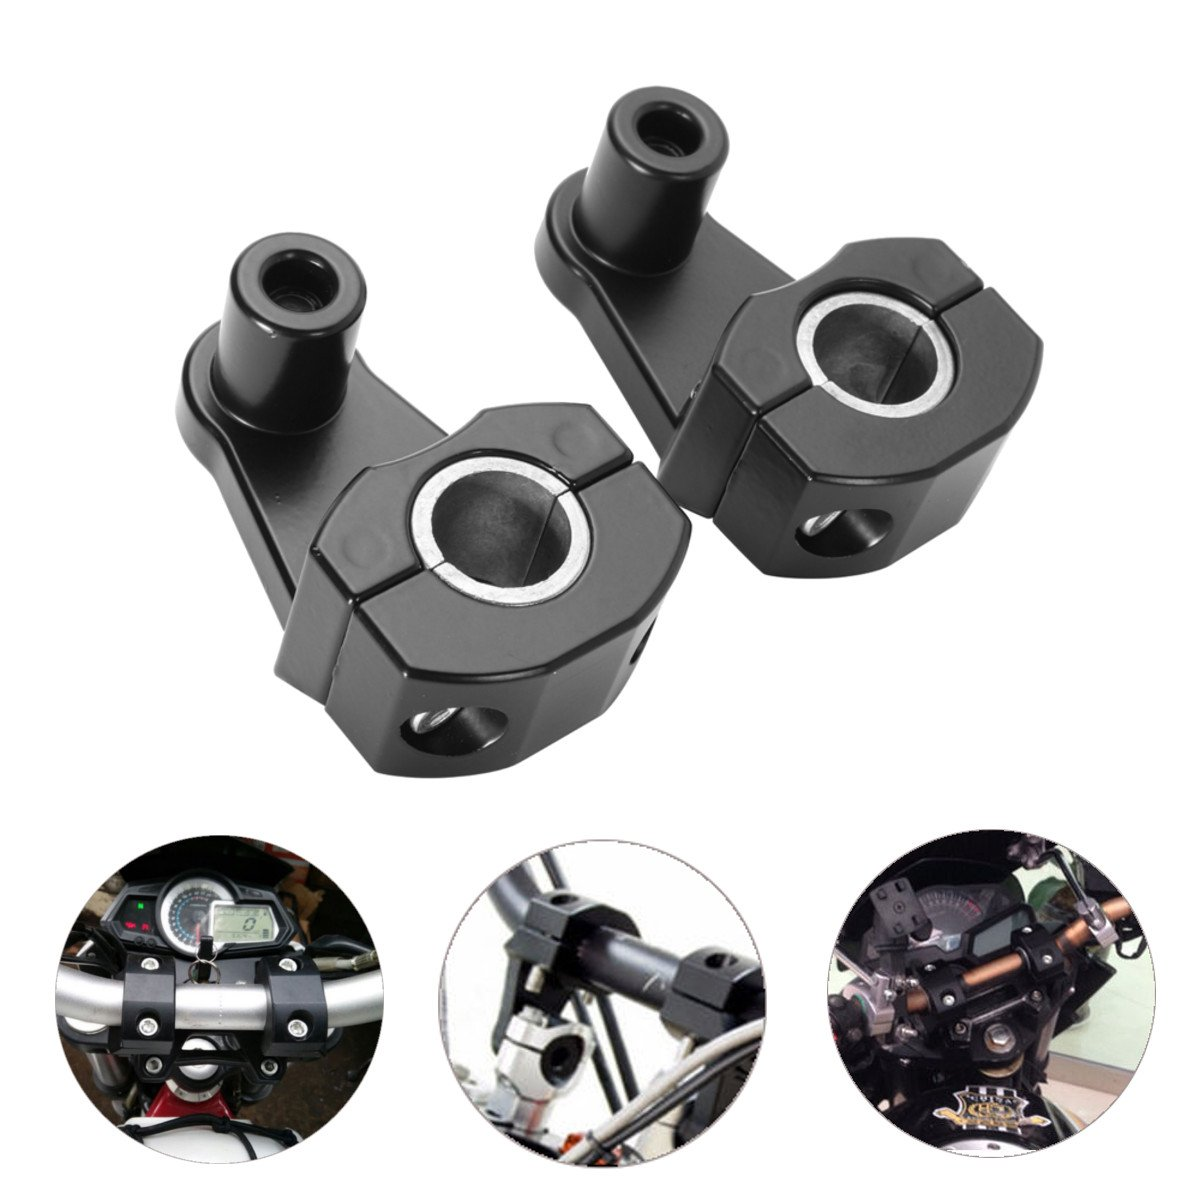 Kungfu Mall 22MM Handlebar Clamps Riser Motorcycle Handle Fat Bar Mount Universal